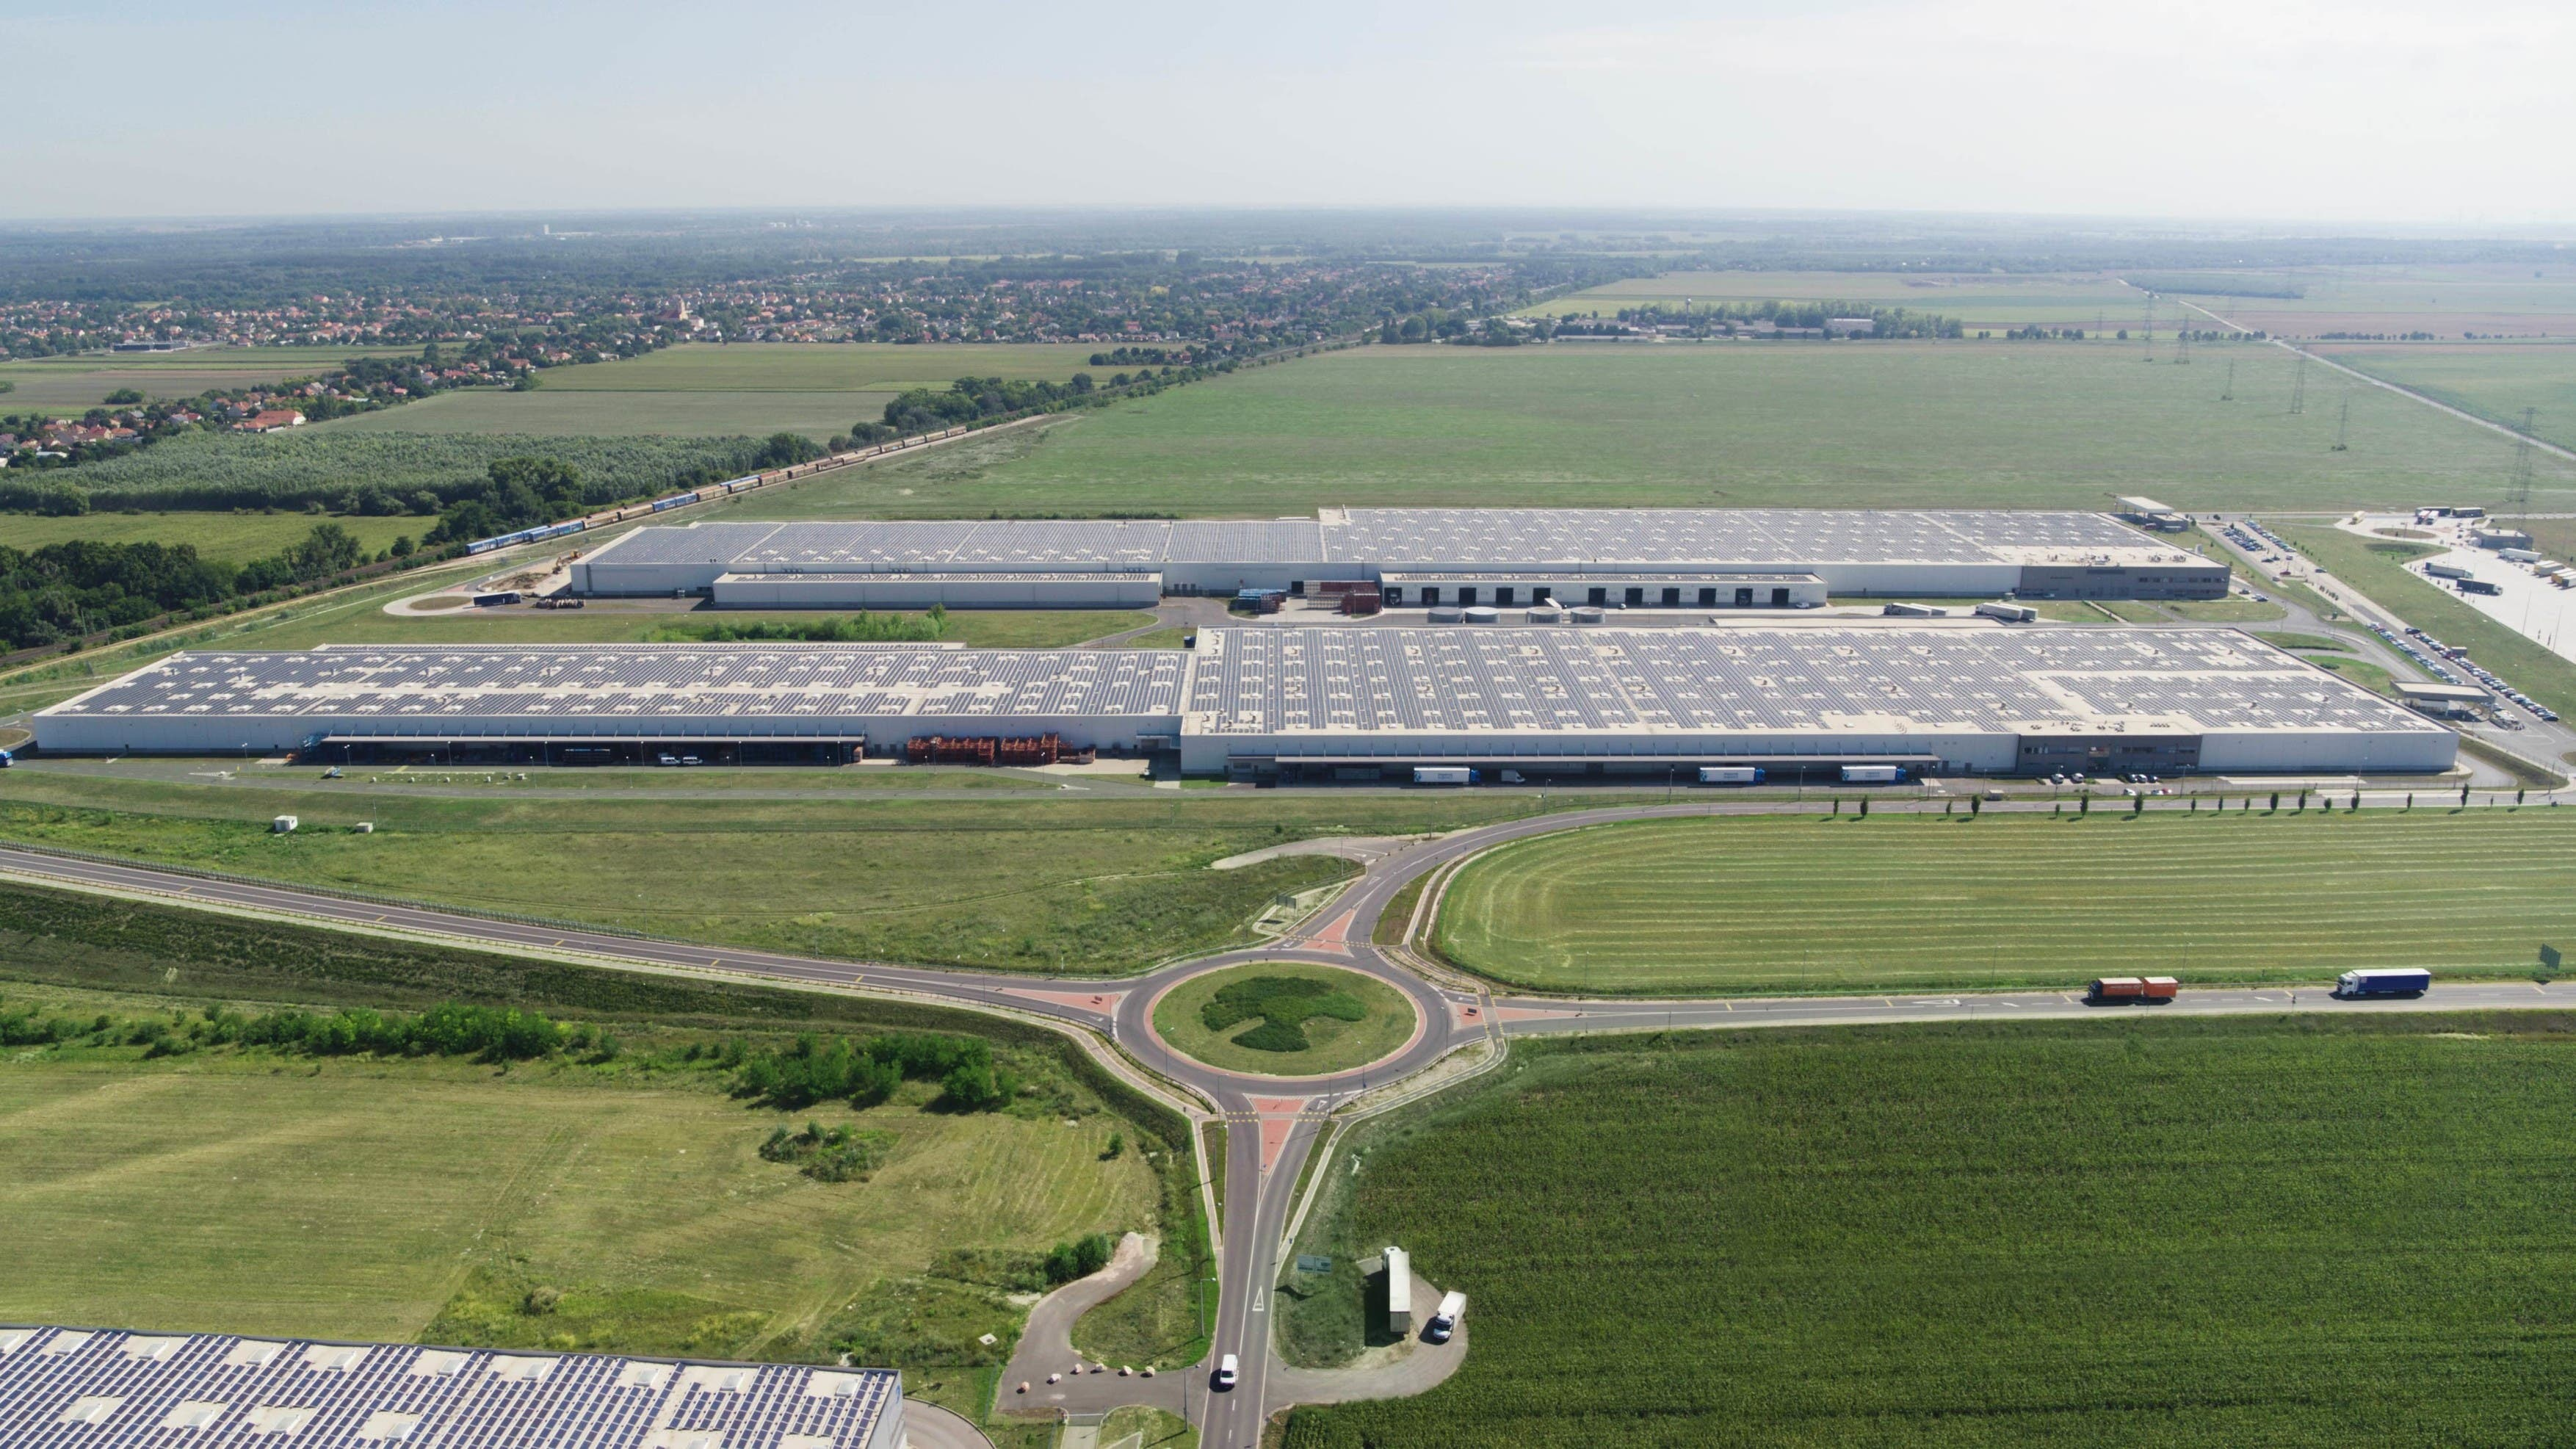 Largest rooftop solar PV system in Europe